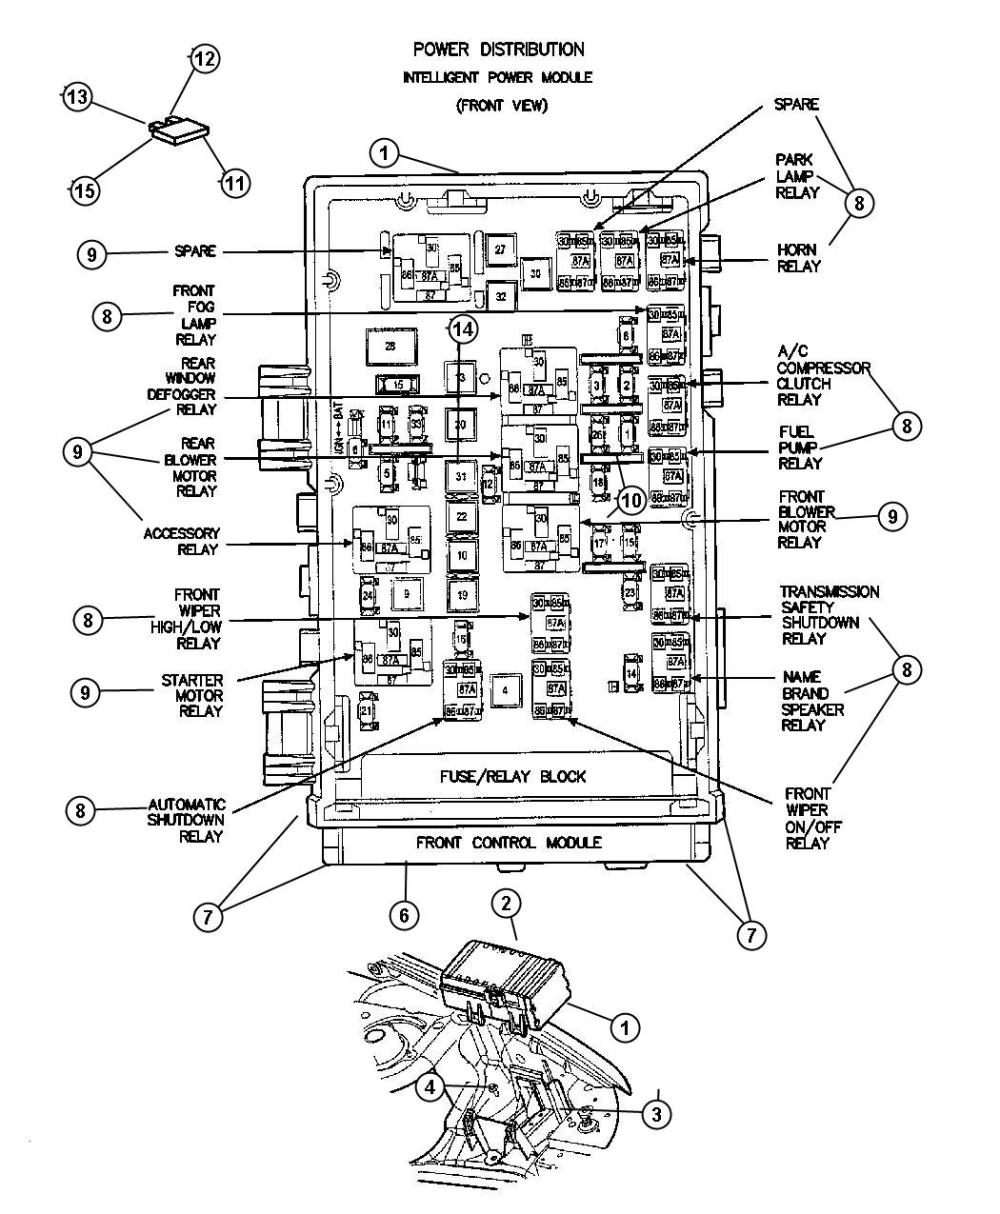 medium resolution of 2001 chrysler voyager fuse box diagram 2001 get free 2003 chevy express fuse box diagram 2003